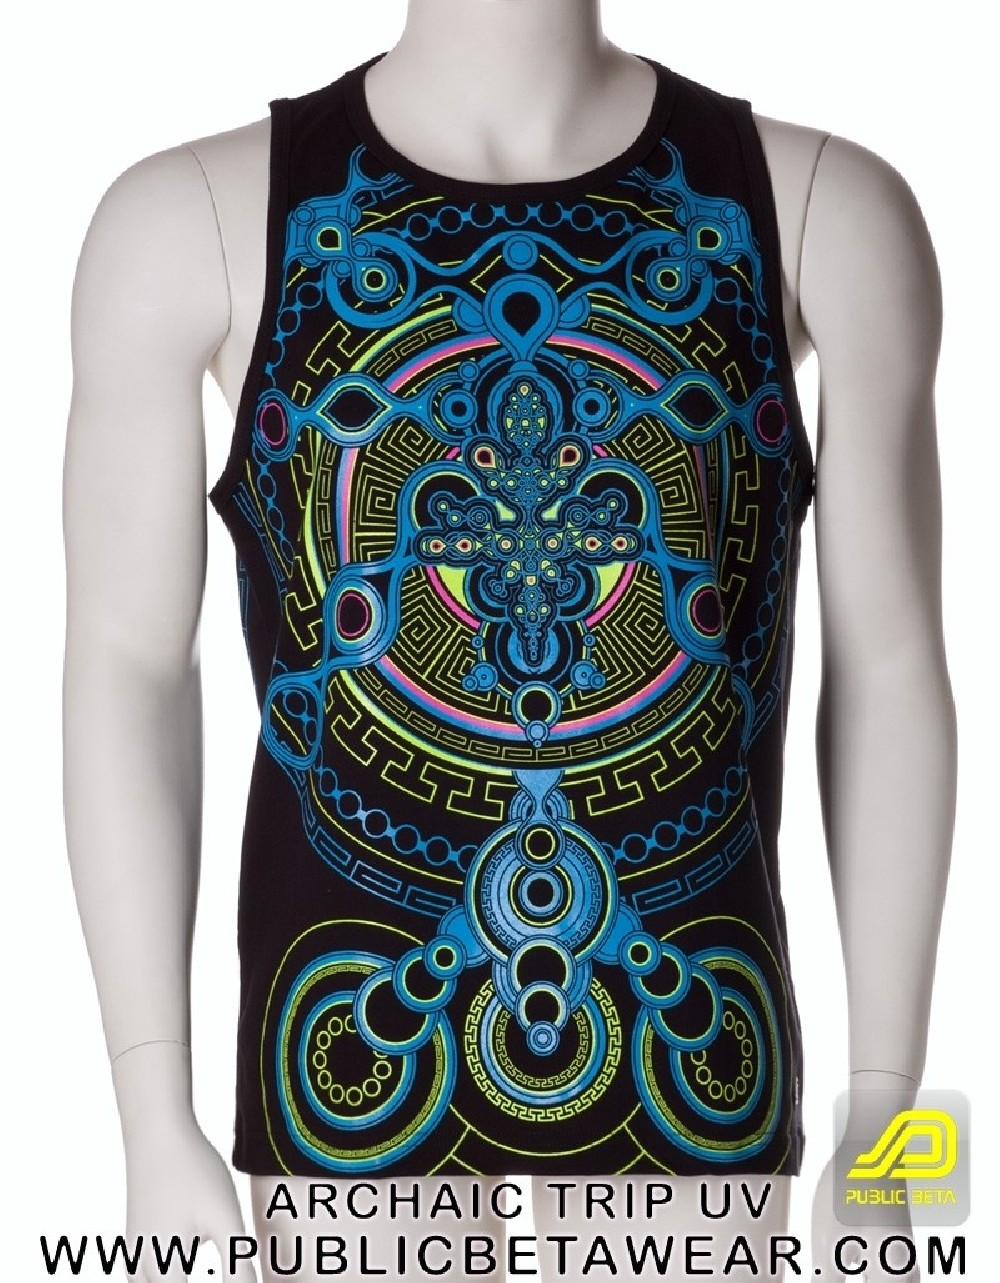 Archaic Trip UV D12 - Sleeveless T-Shirt by Public Beta Wear